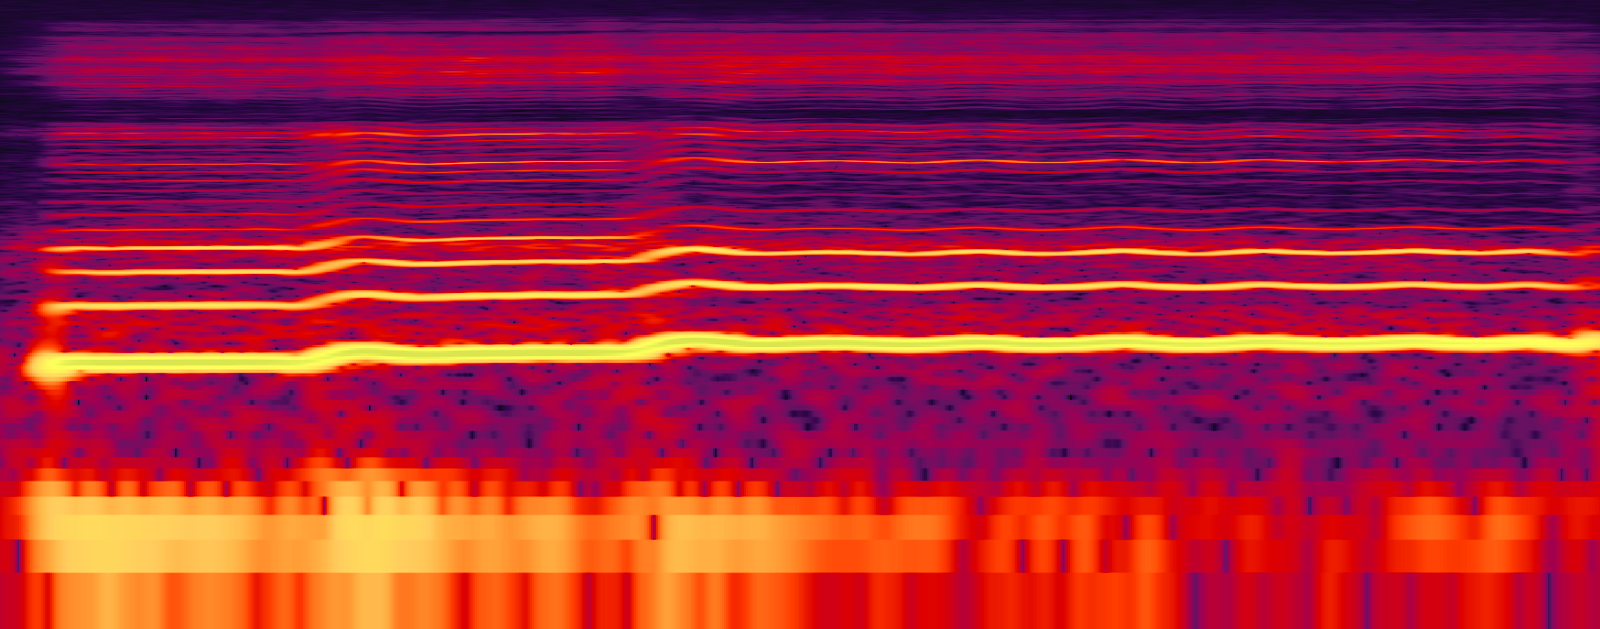 What's wrong with CNNs and spectrograms for audio processing?